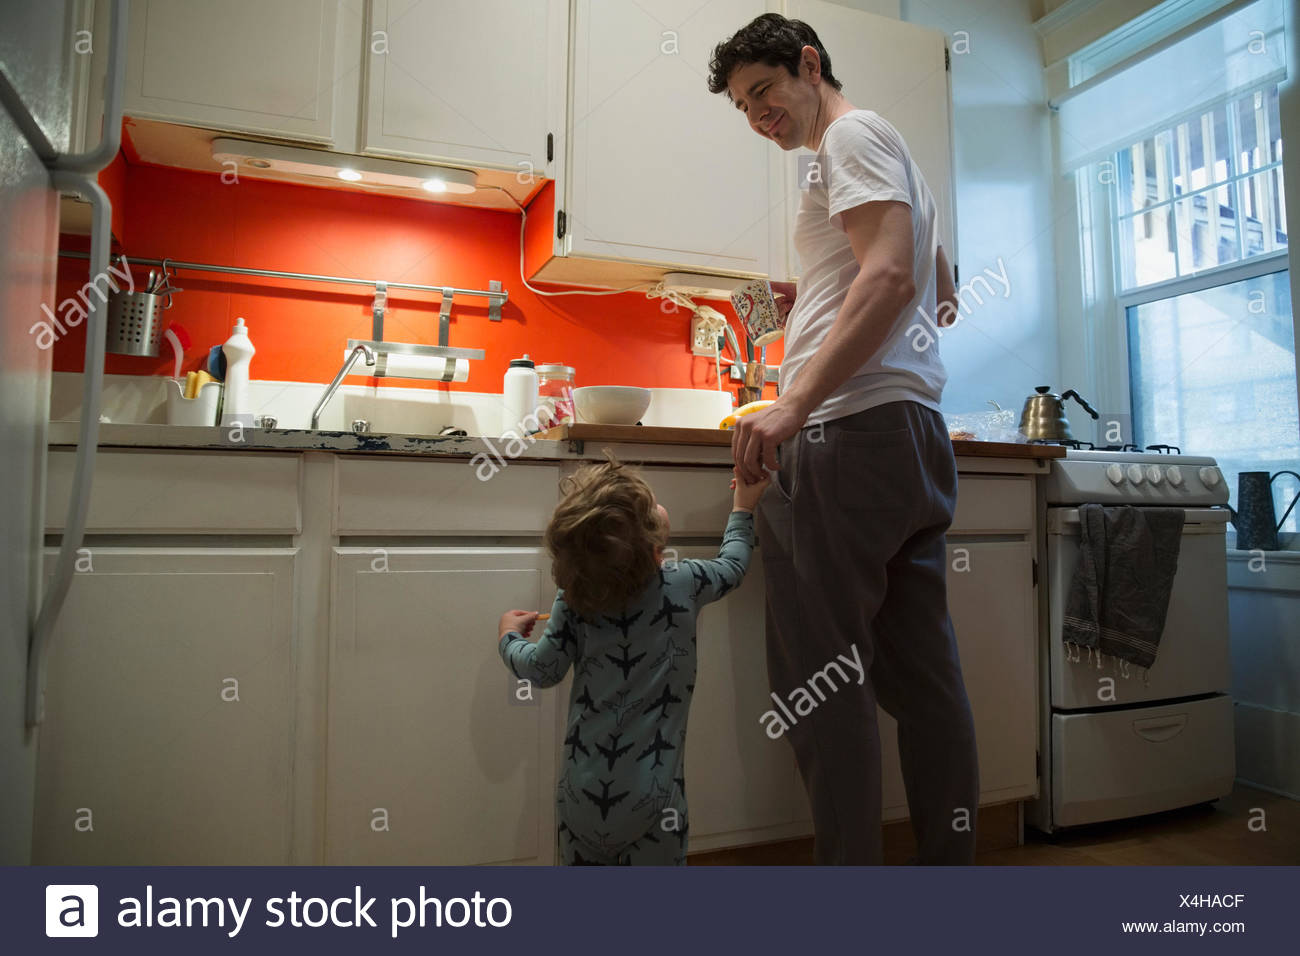 Father and son holding hands in kitchen - Stock Image